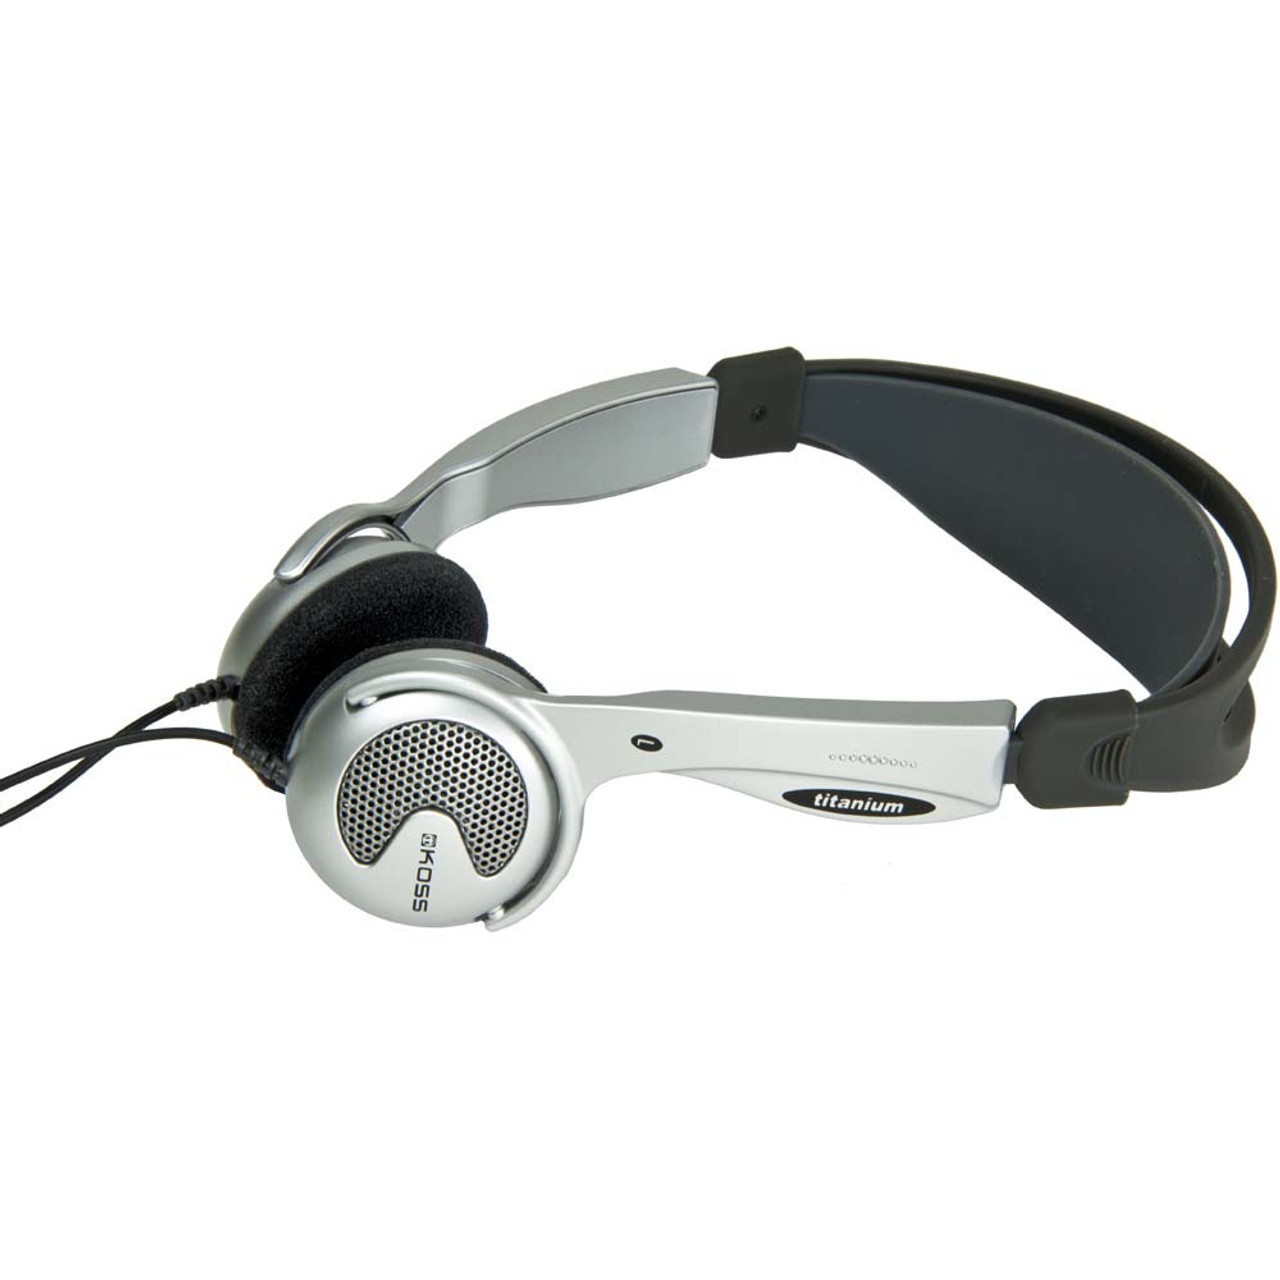 Cardionics 718-0405 E-Scope Traditional Headphones